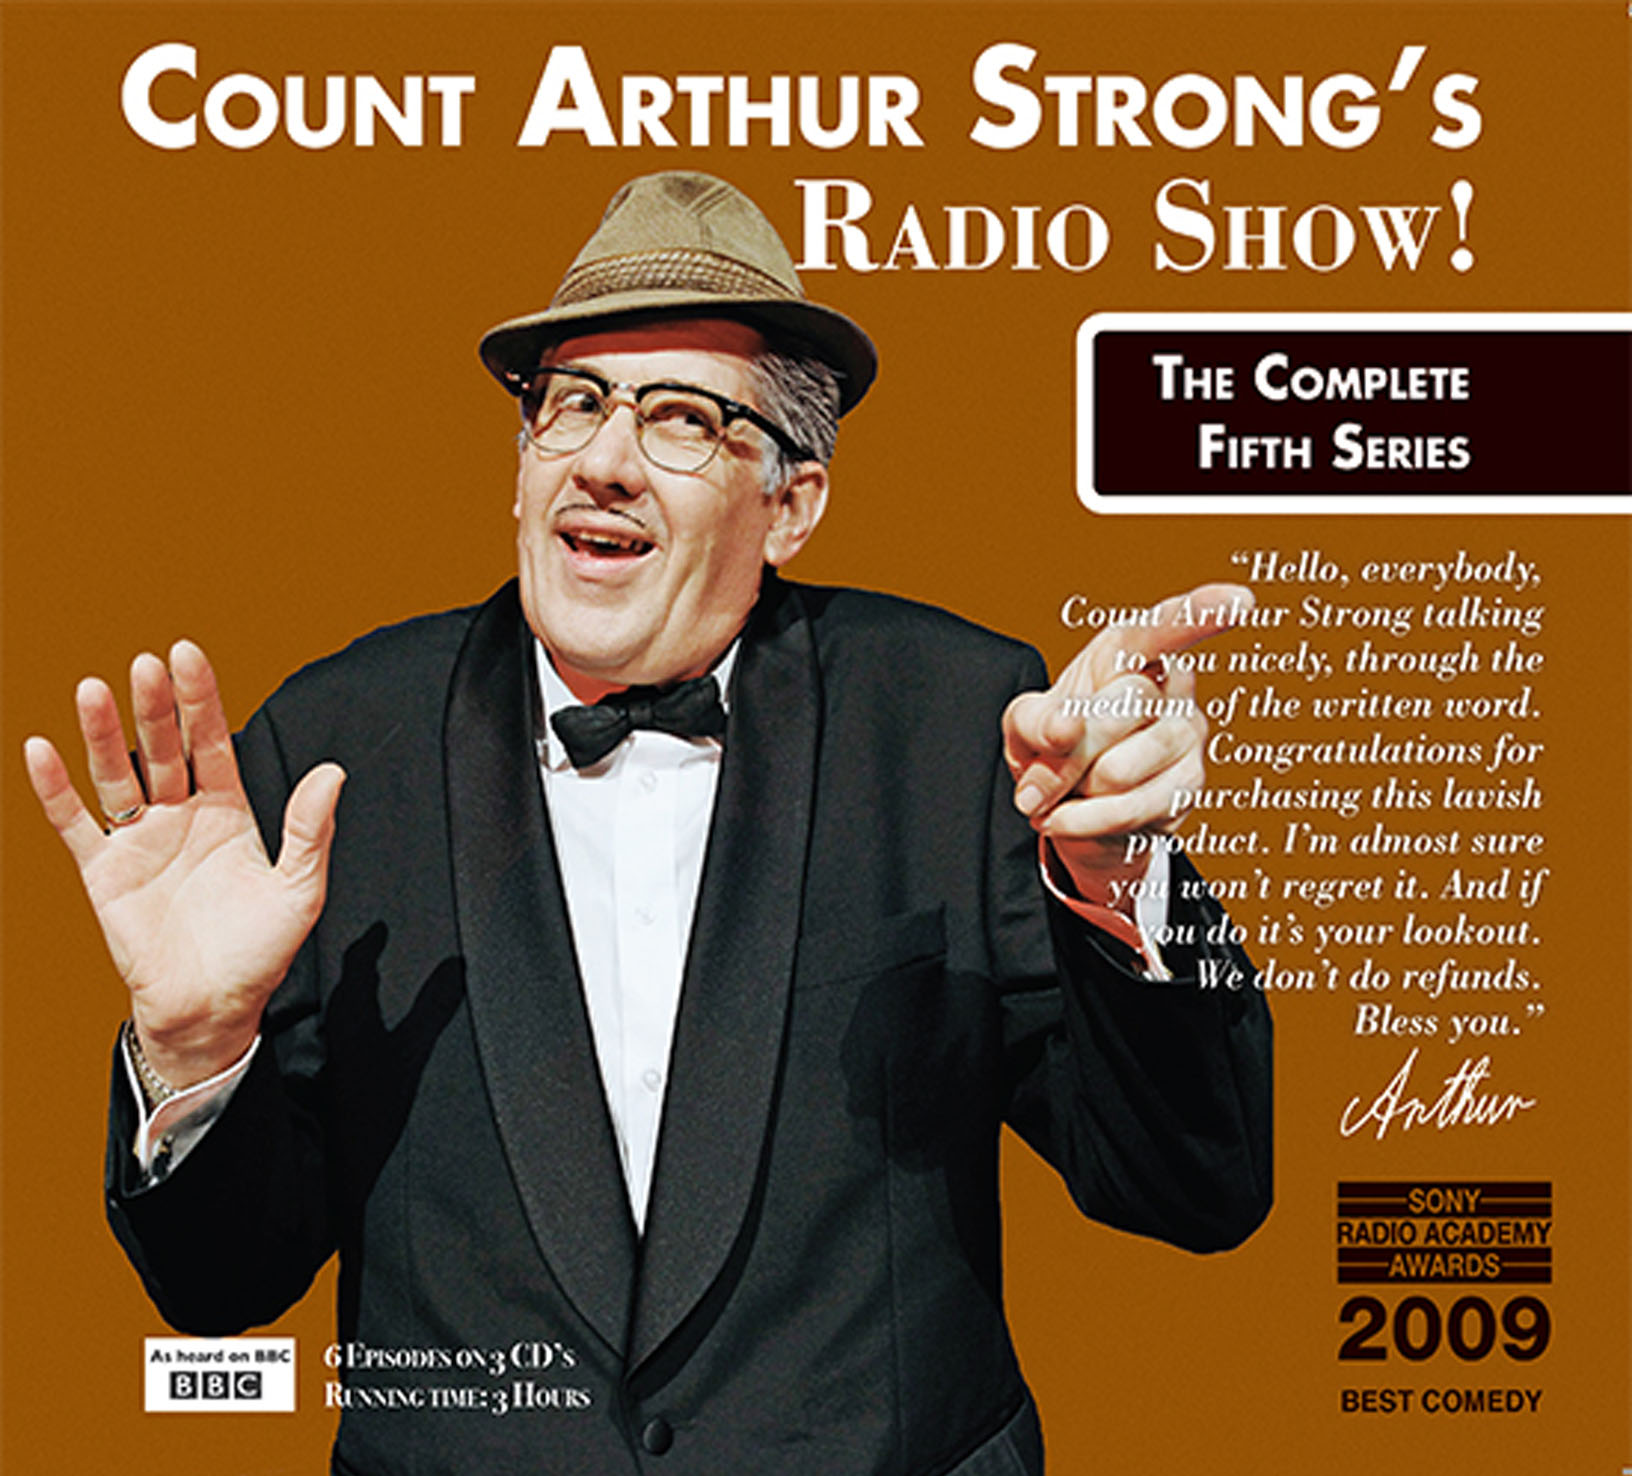 Count arthur strong's radio show! : the complete first series.